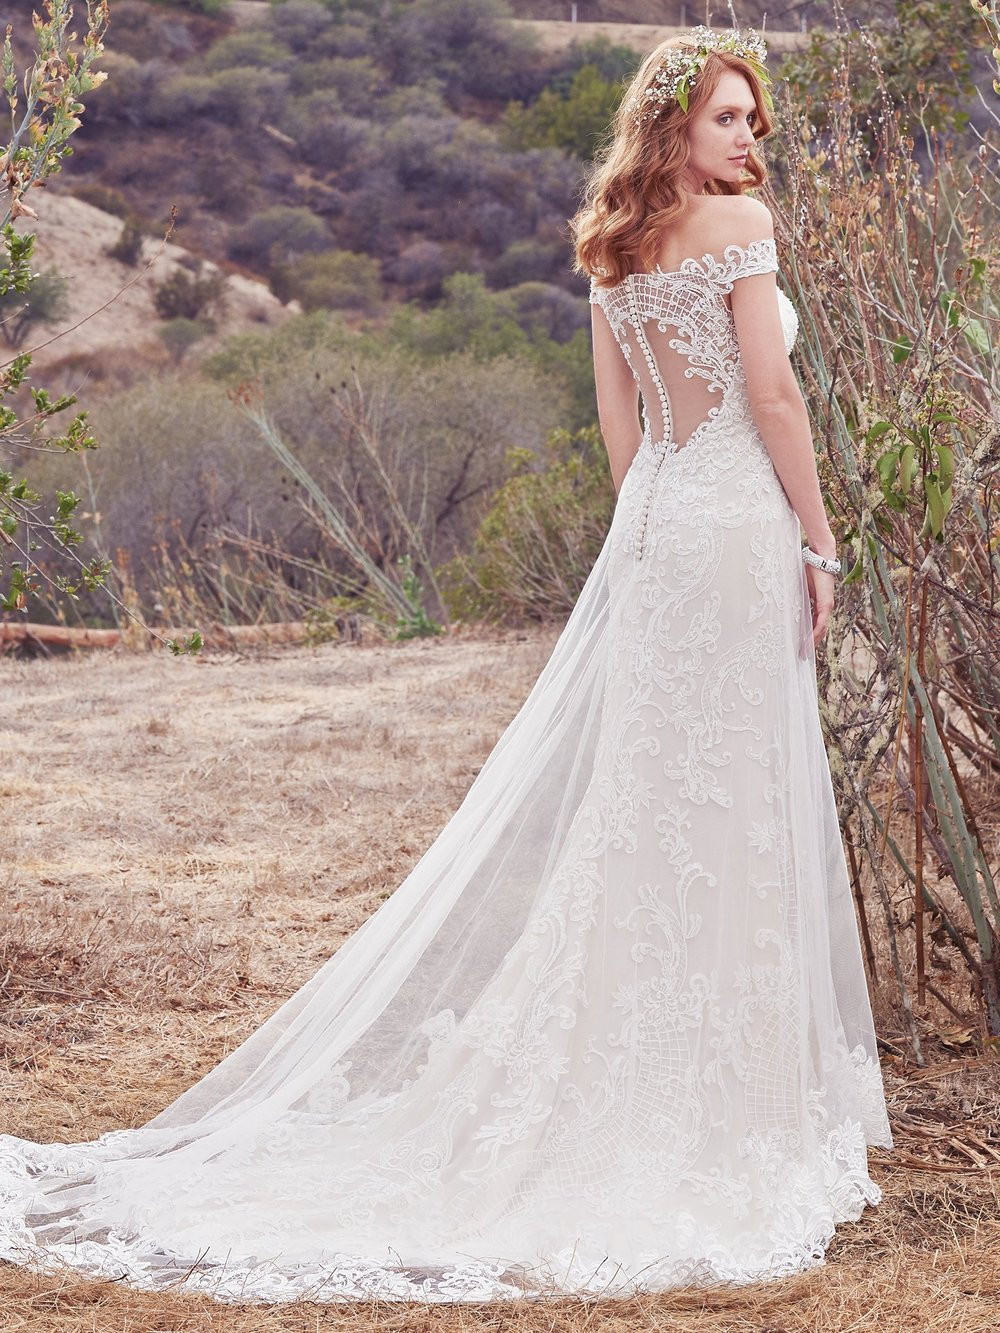 Maggie-Sottero-Wedding-Dress-Daisy-7MT904-Back.jpg